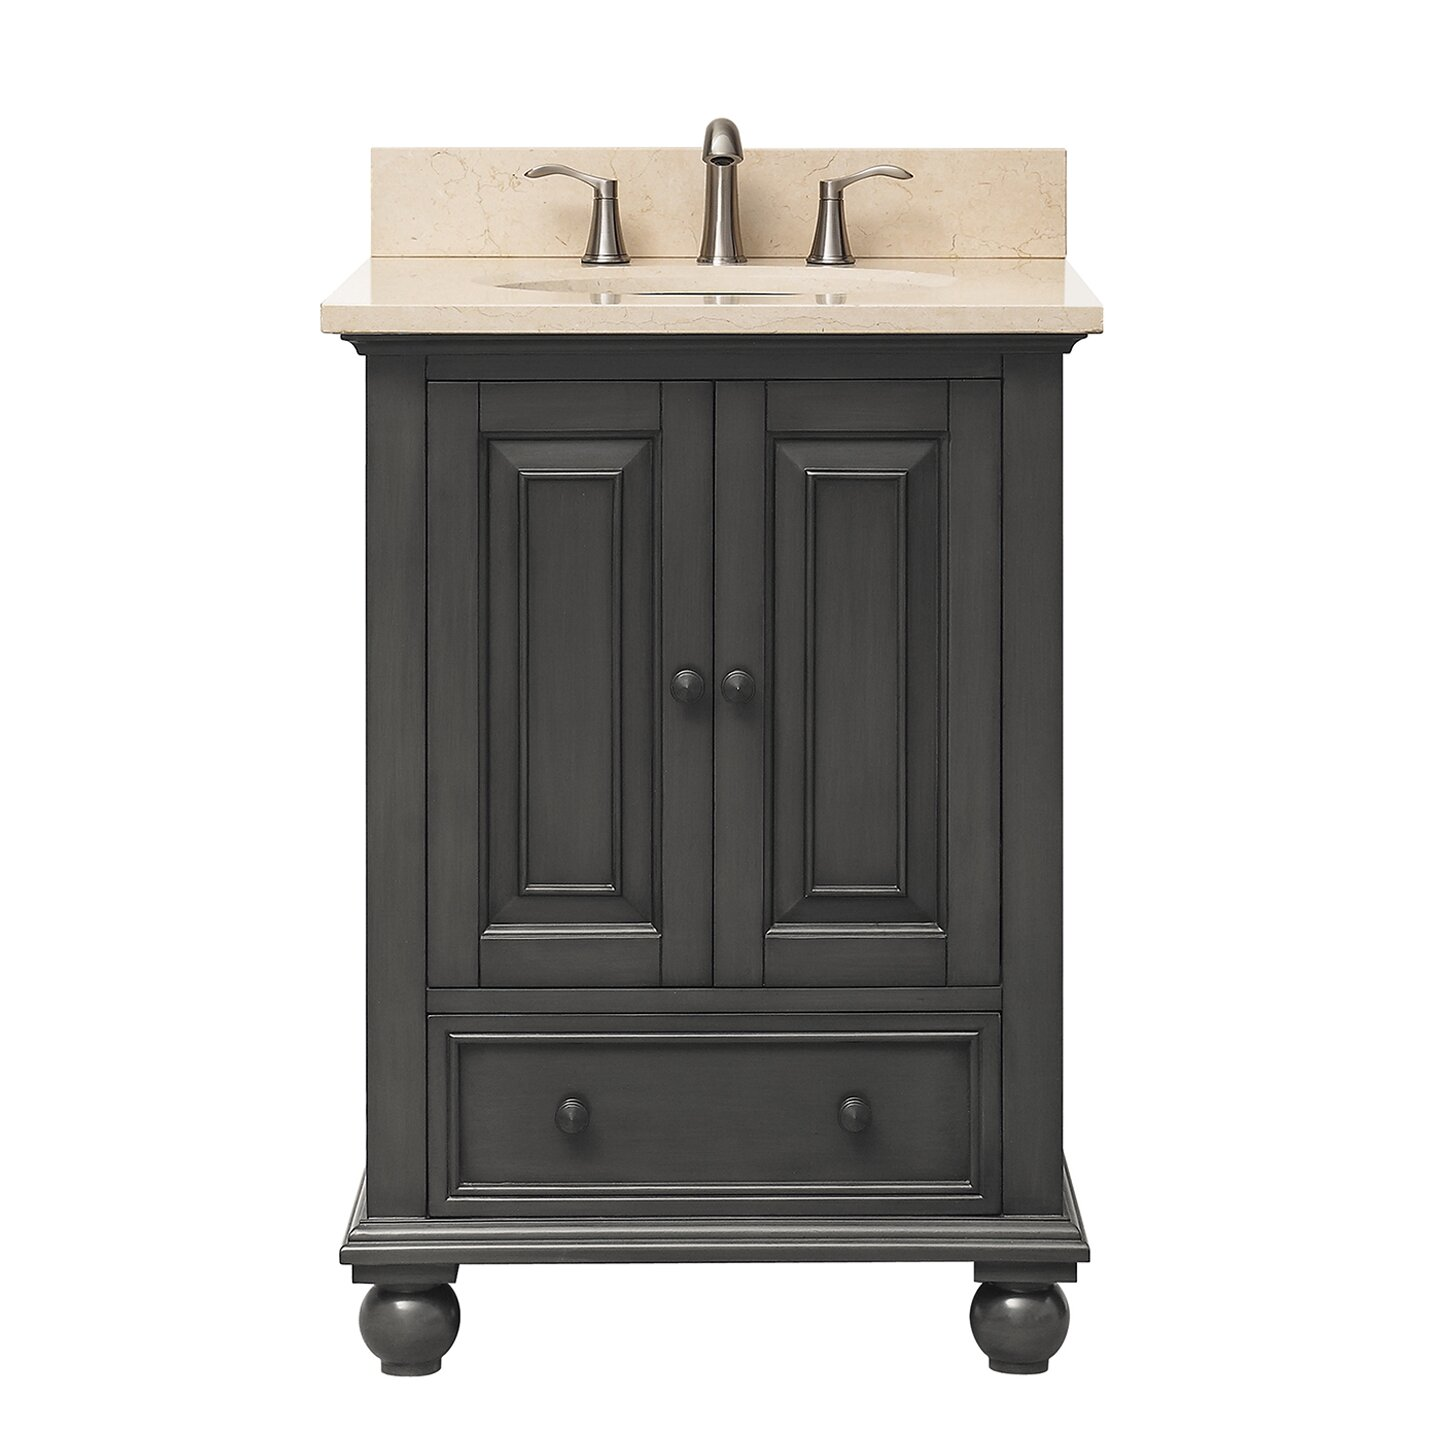 Avanity thompson 25 single modern bathroom vanity set reviews wayfair - Kona modern bathroom vanity set ...